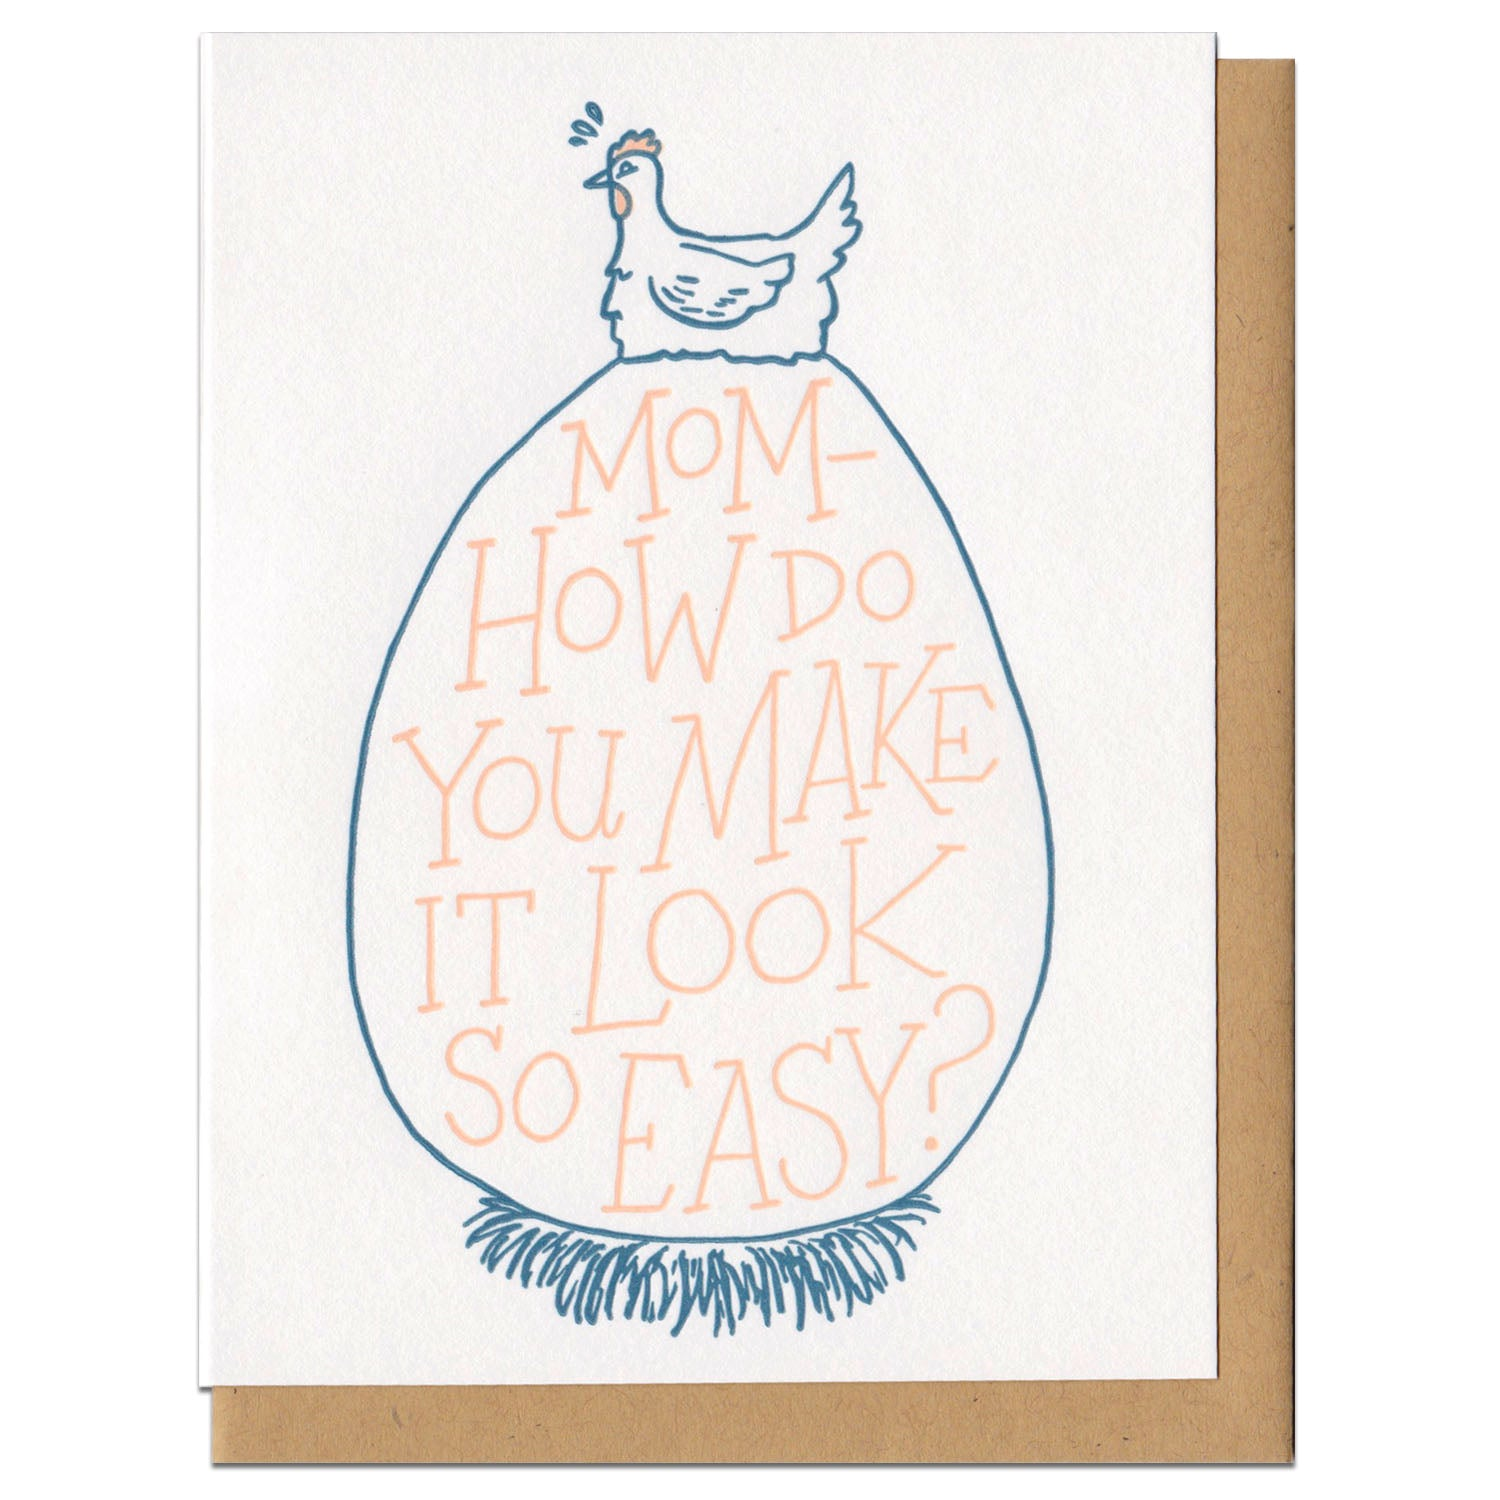 Mom How Do You Make It Look So Easy Greeting Card Frog Toad Press